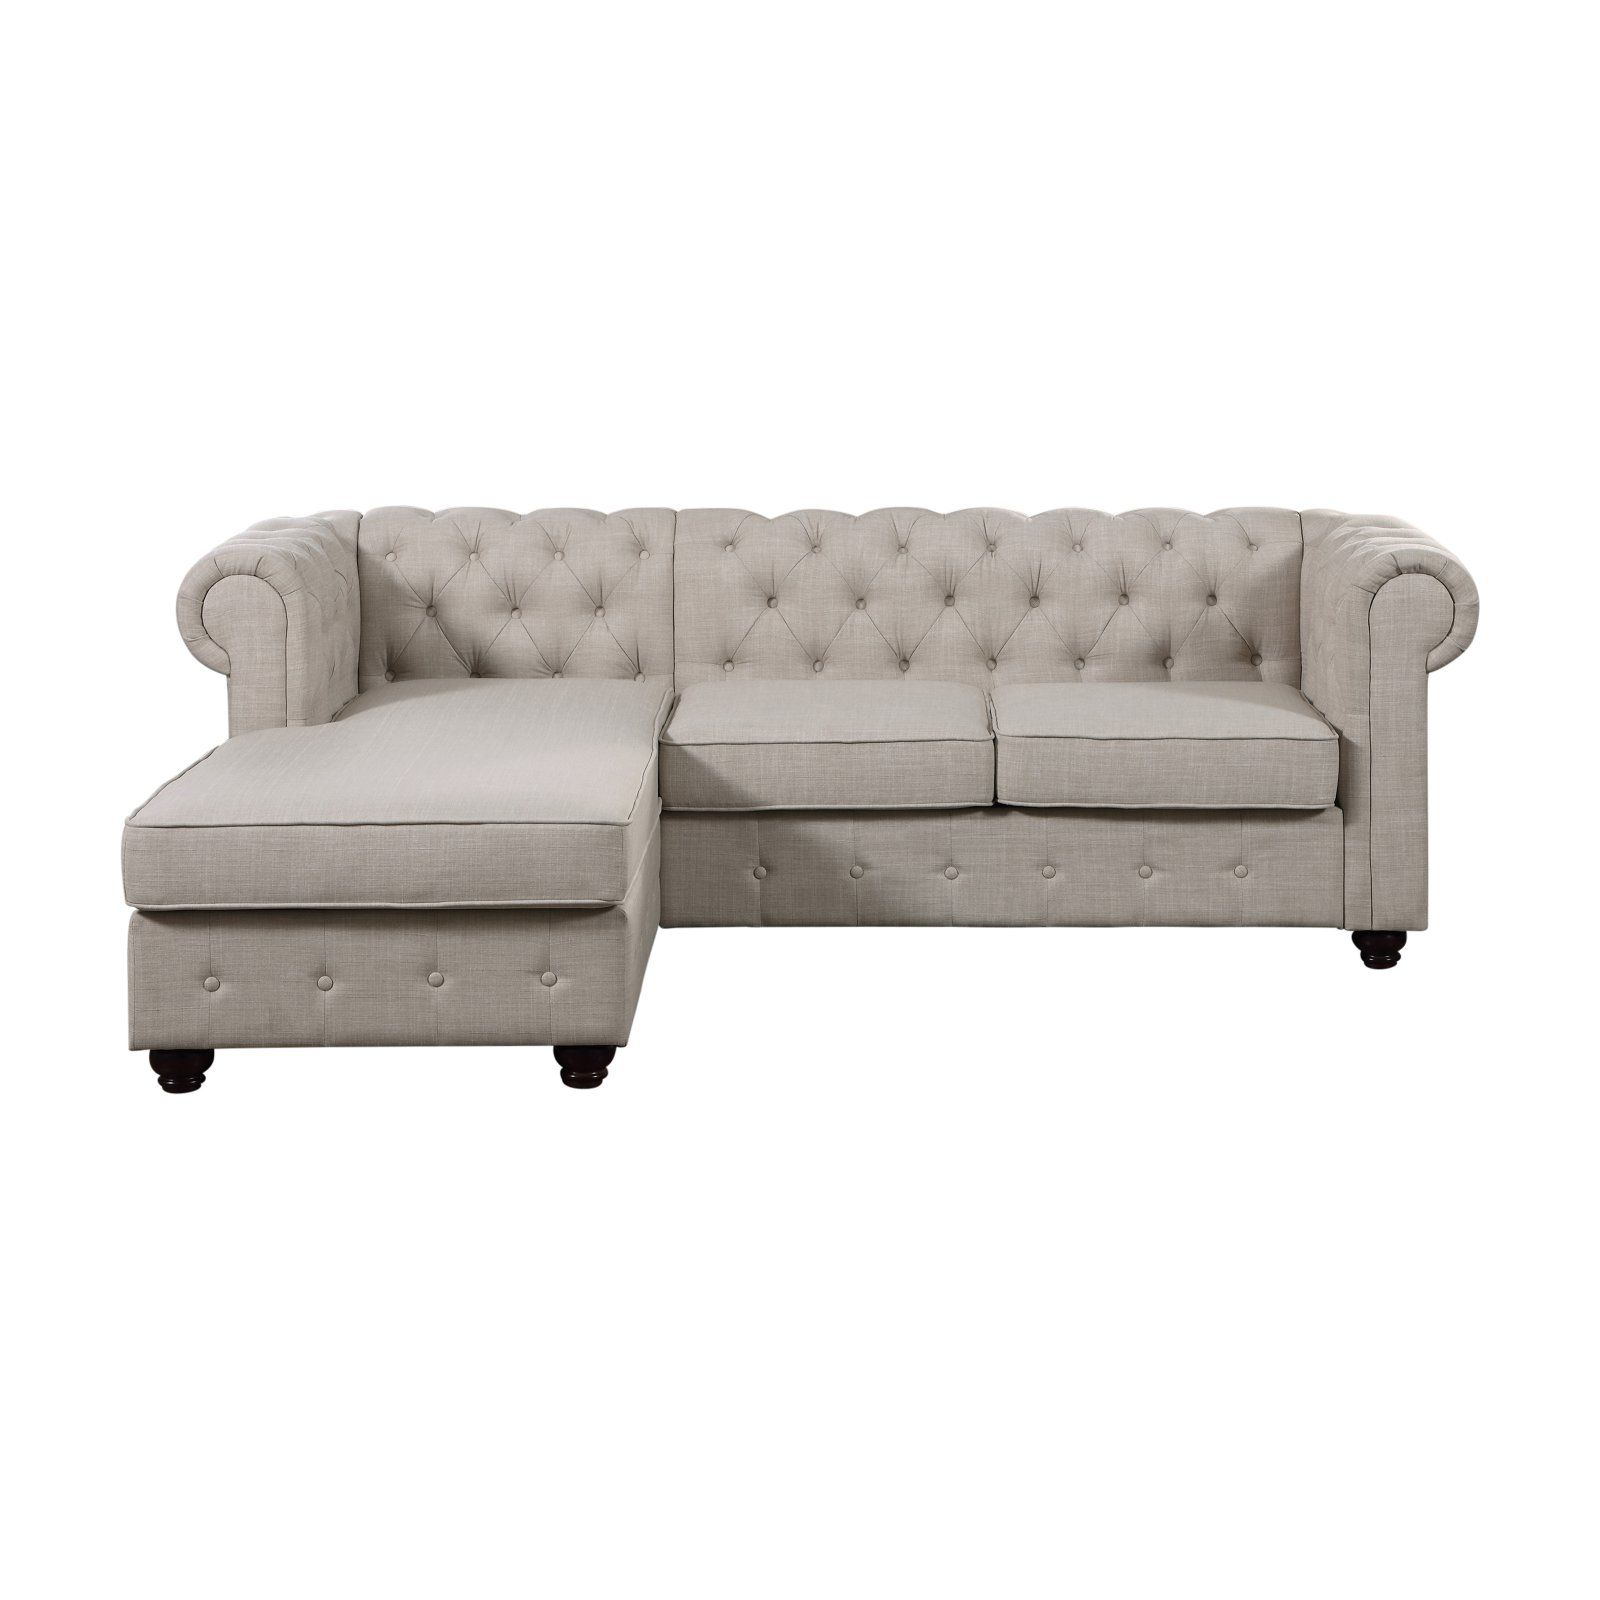 Rosevera Quitaque Tufted 3 Seat Sectional Sofa With Chaise